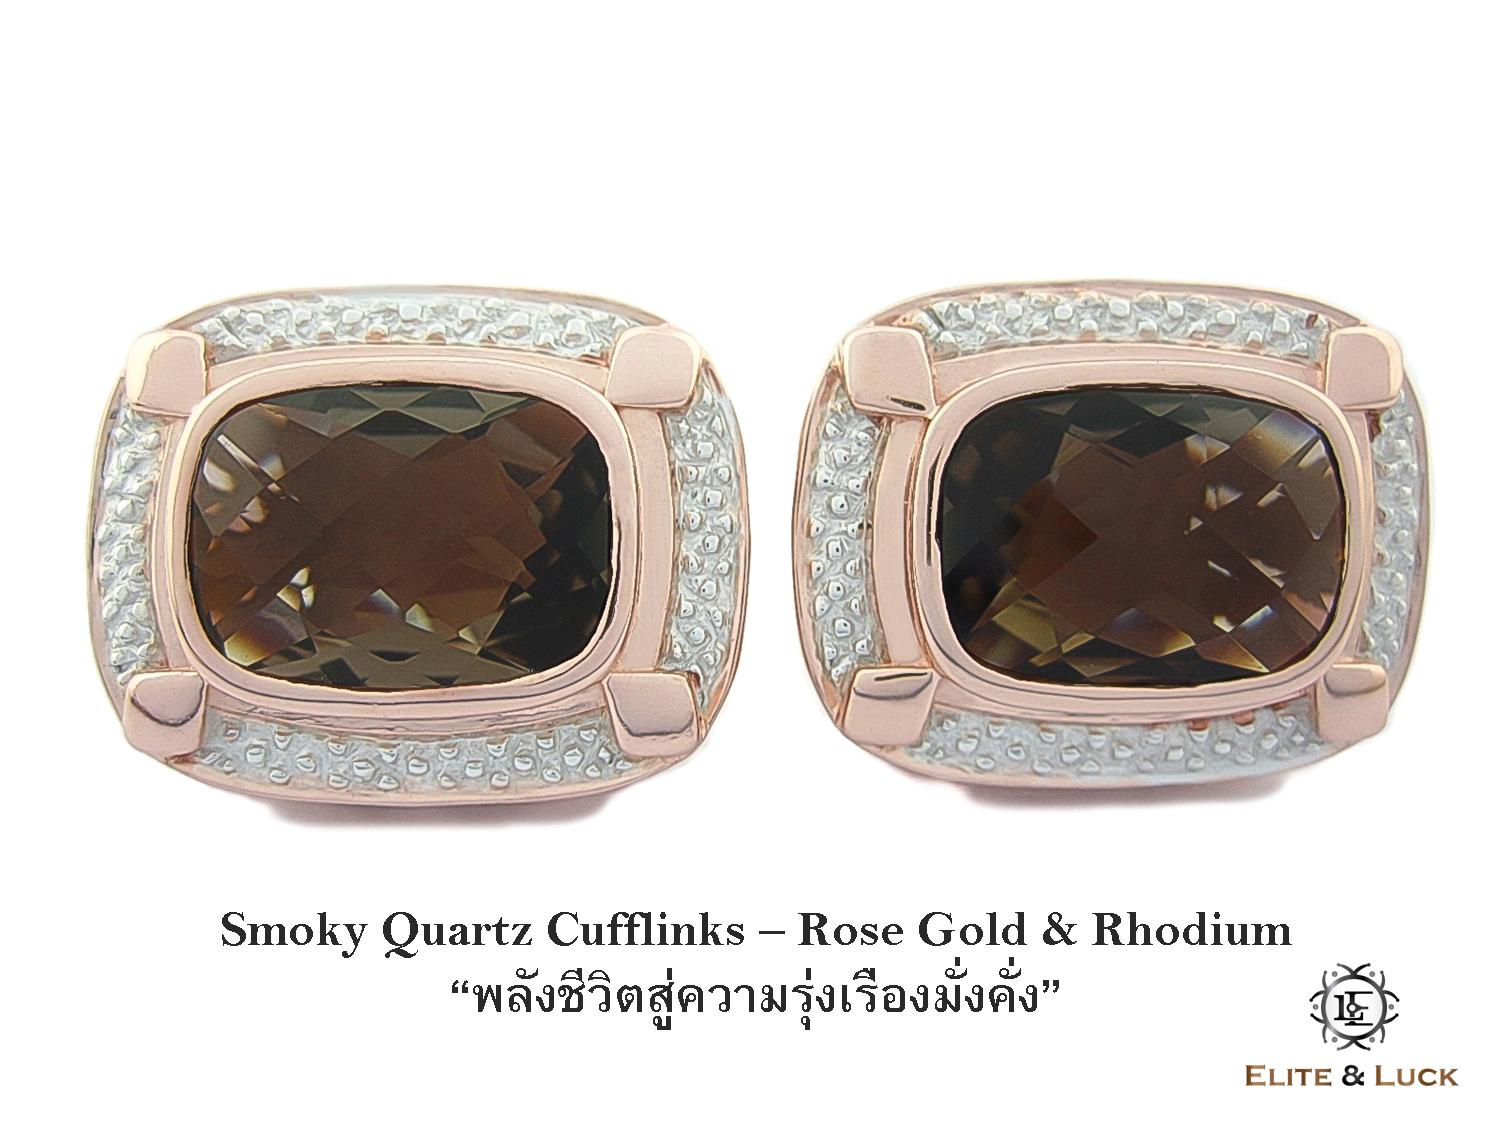 Smoky Quartz Sterling Silver Cufflinks สี Rose Gold & Rhodium รุ่น Luxury